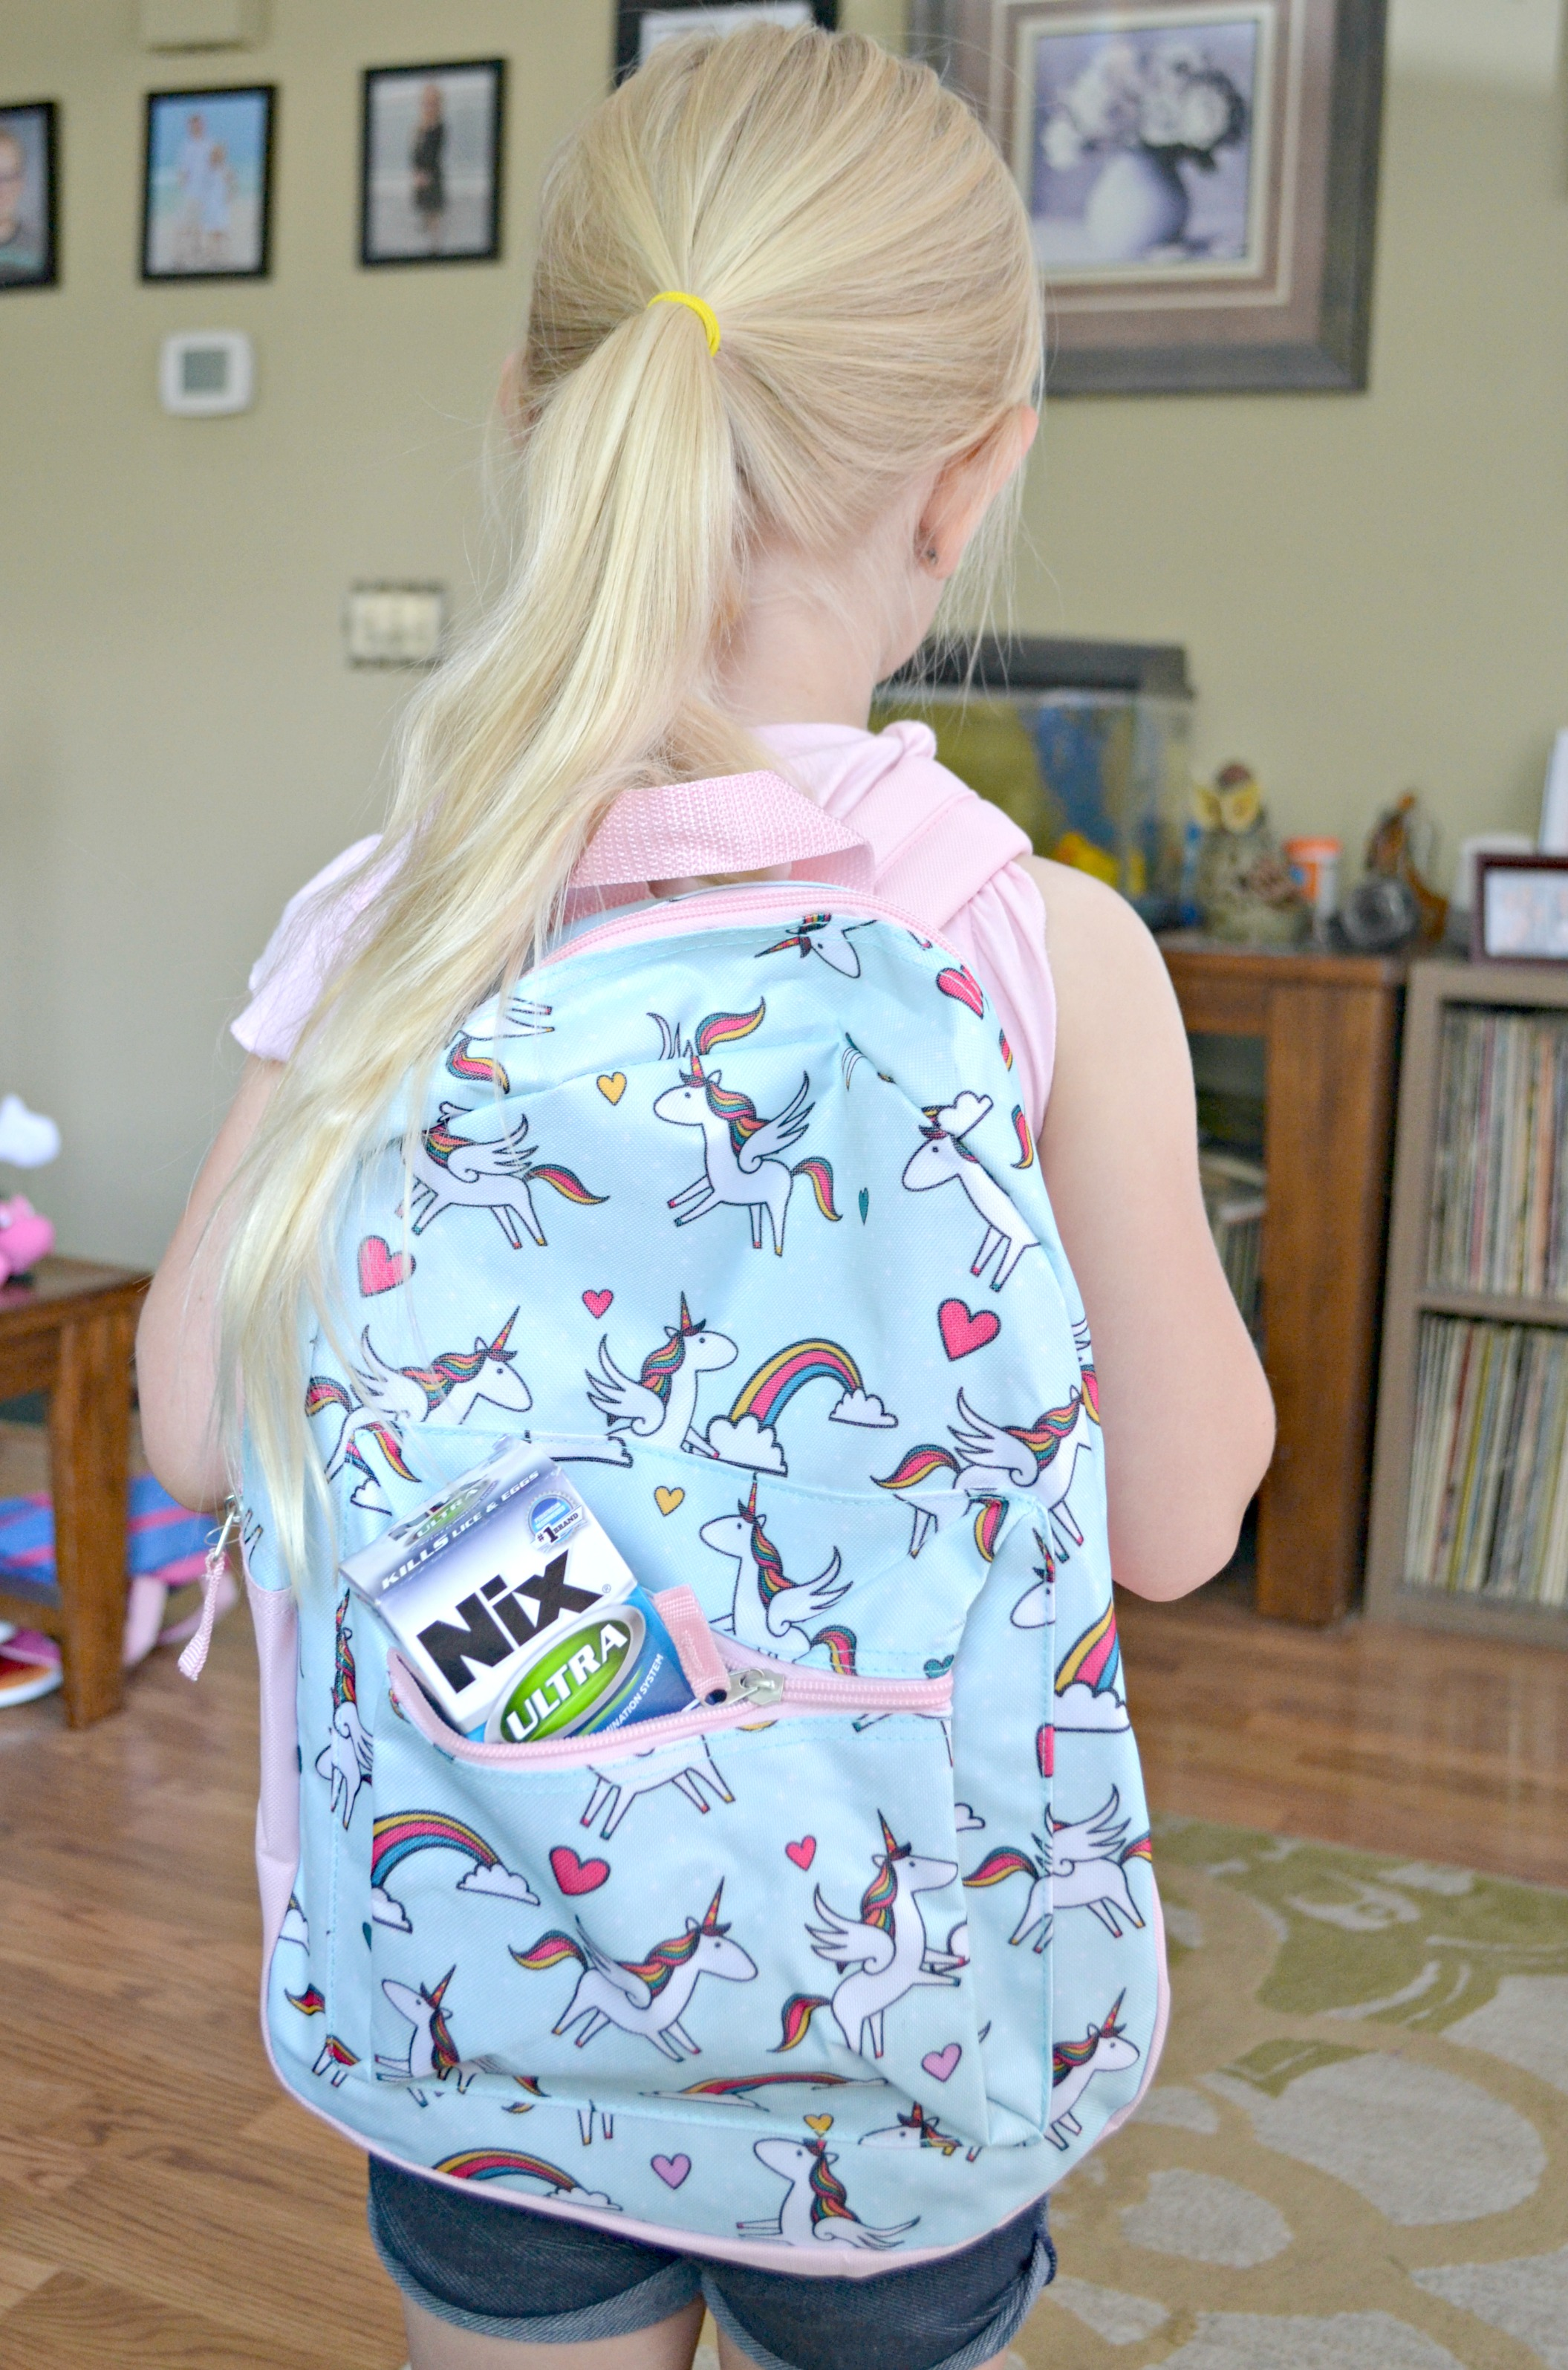 Tips For Preventing Lice This Back To School Season, lice prevention, lice treatment, how to treat lice in long hair, back to school necessities, how do you prevent lice, lice treatments